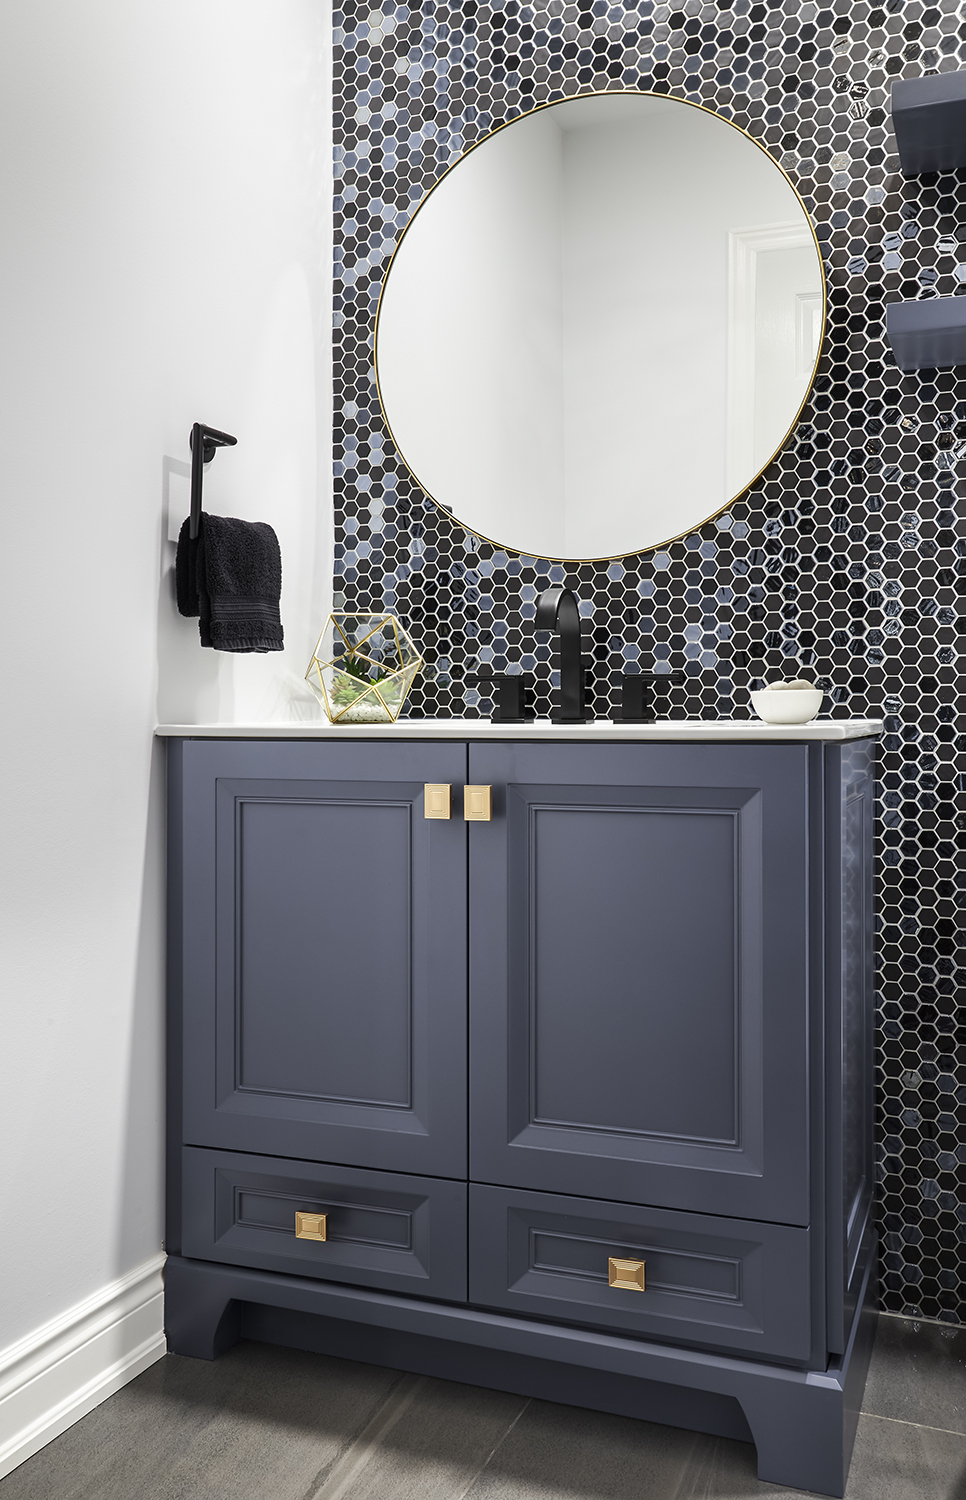 Huge transformation of a 90's Powder Room into a contemporary Jewel Box!